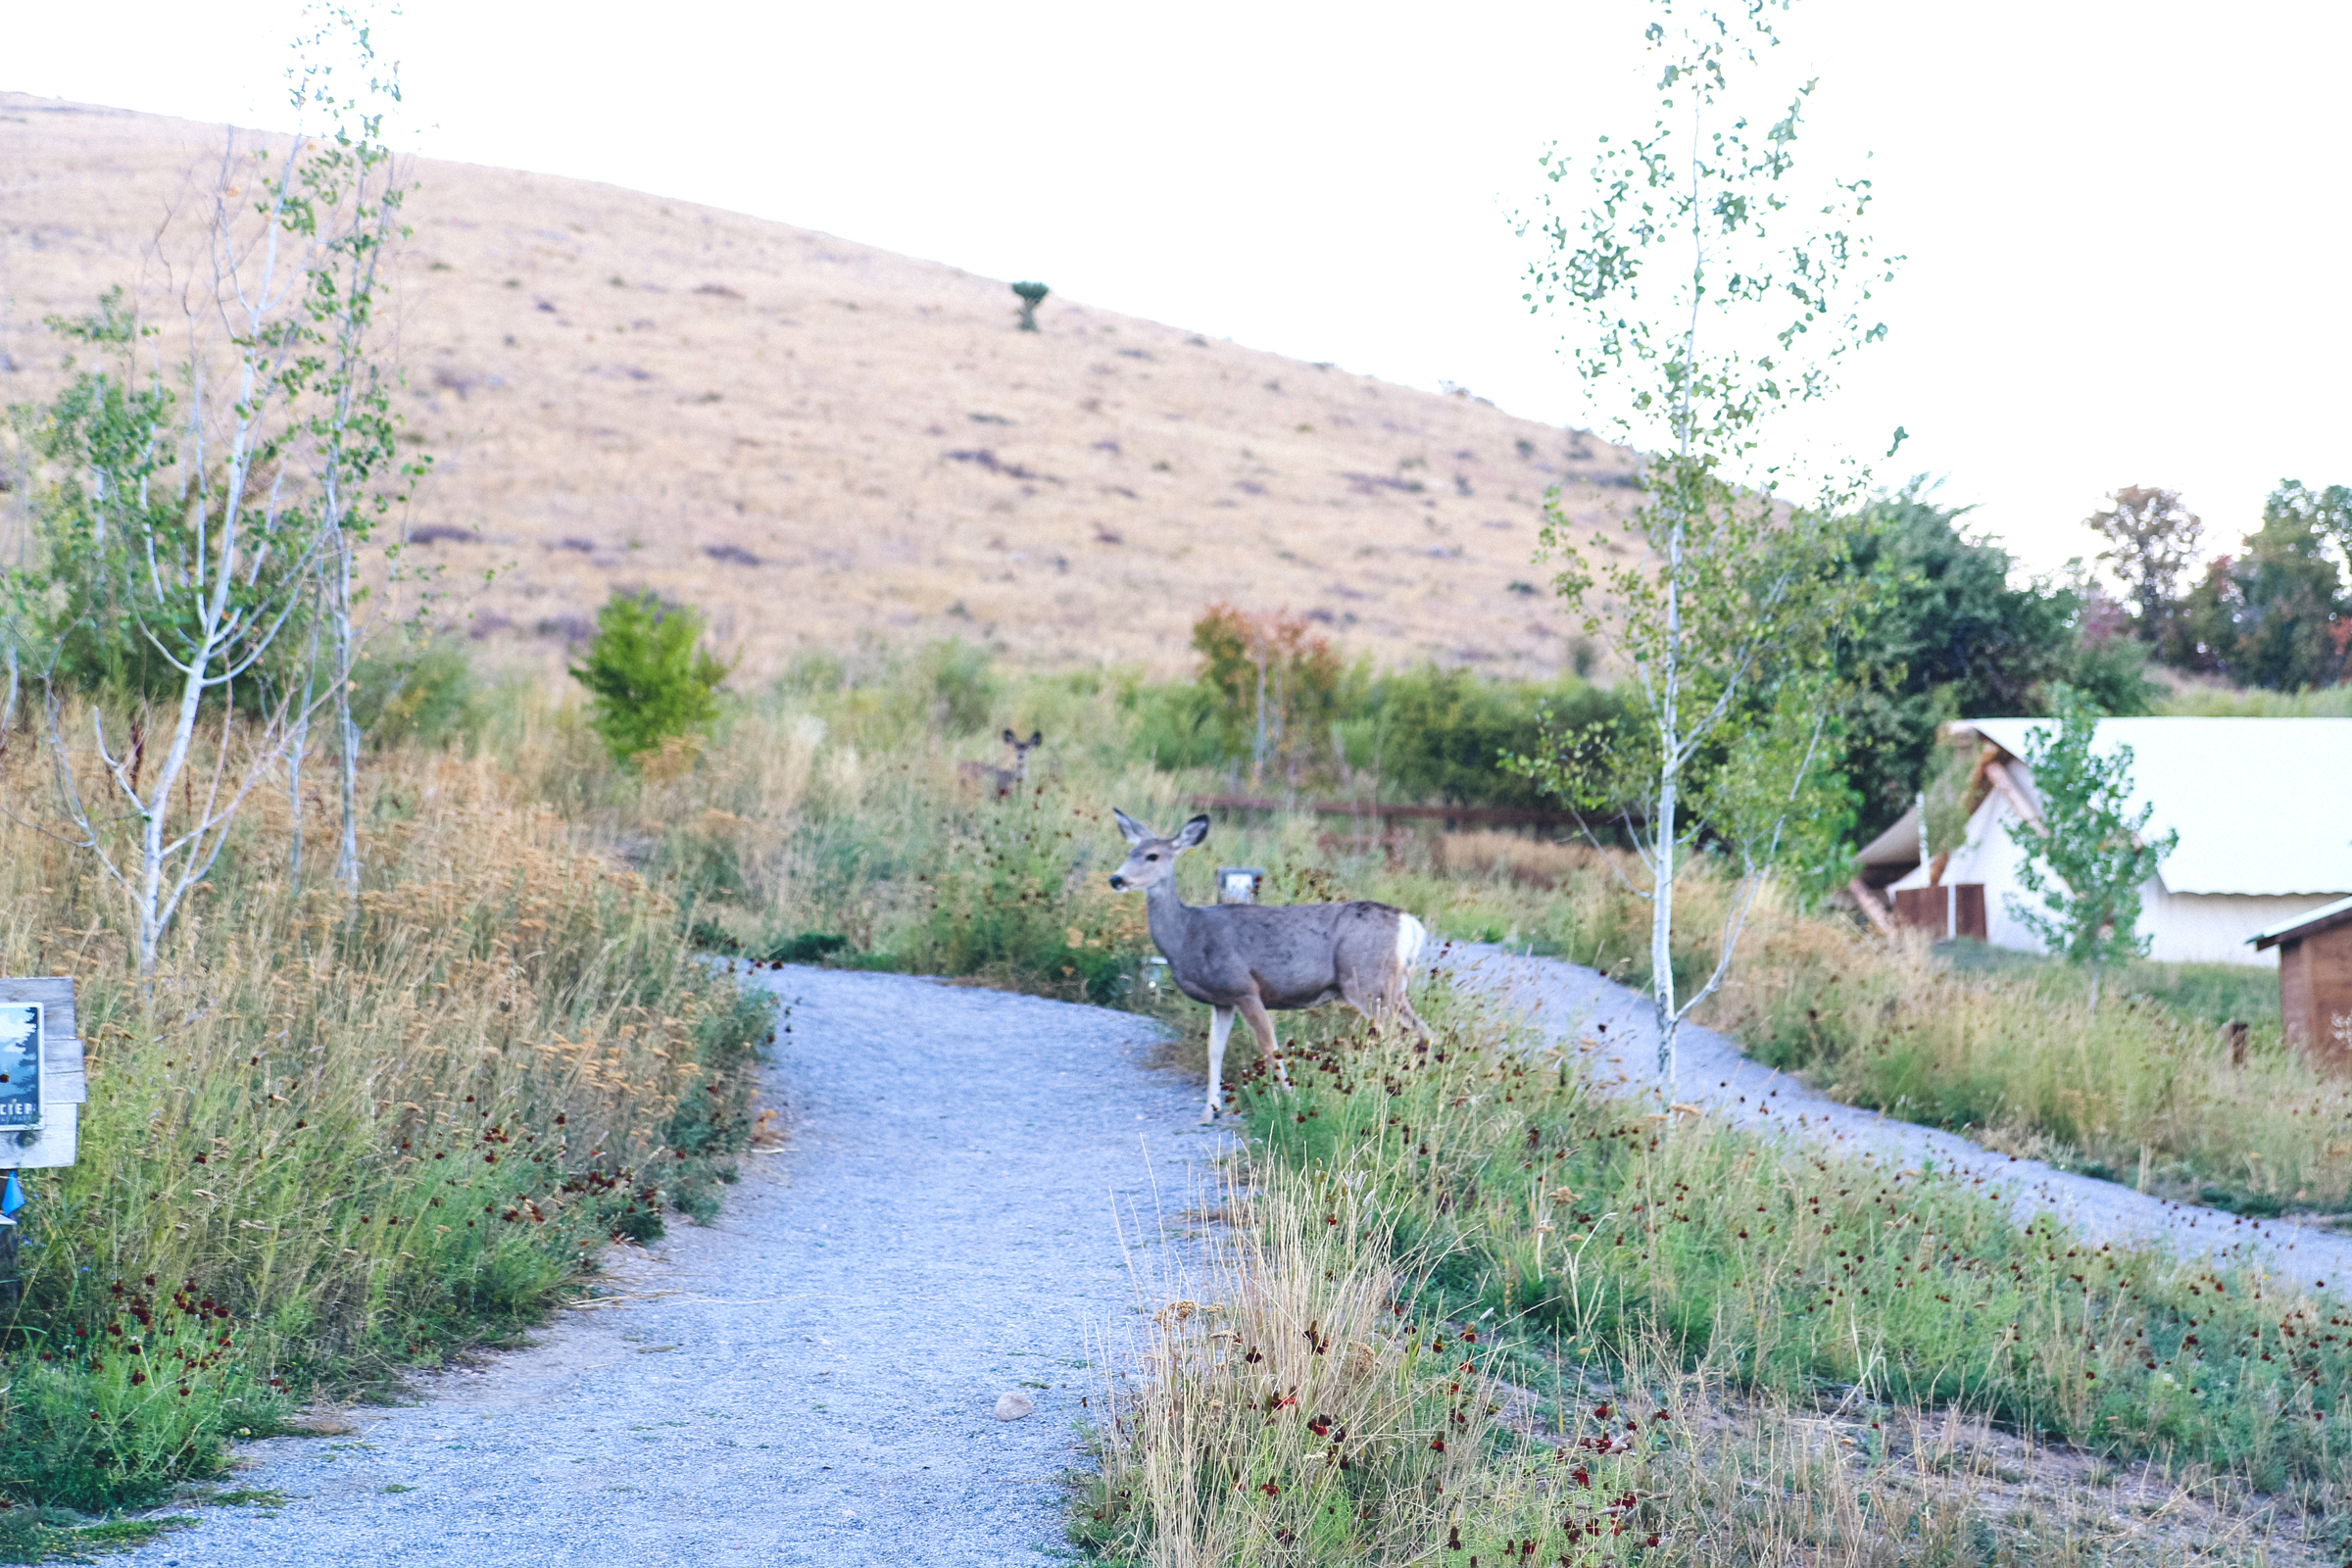 Deer at Conestoga Ranch